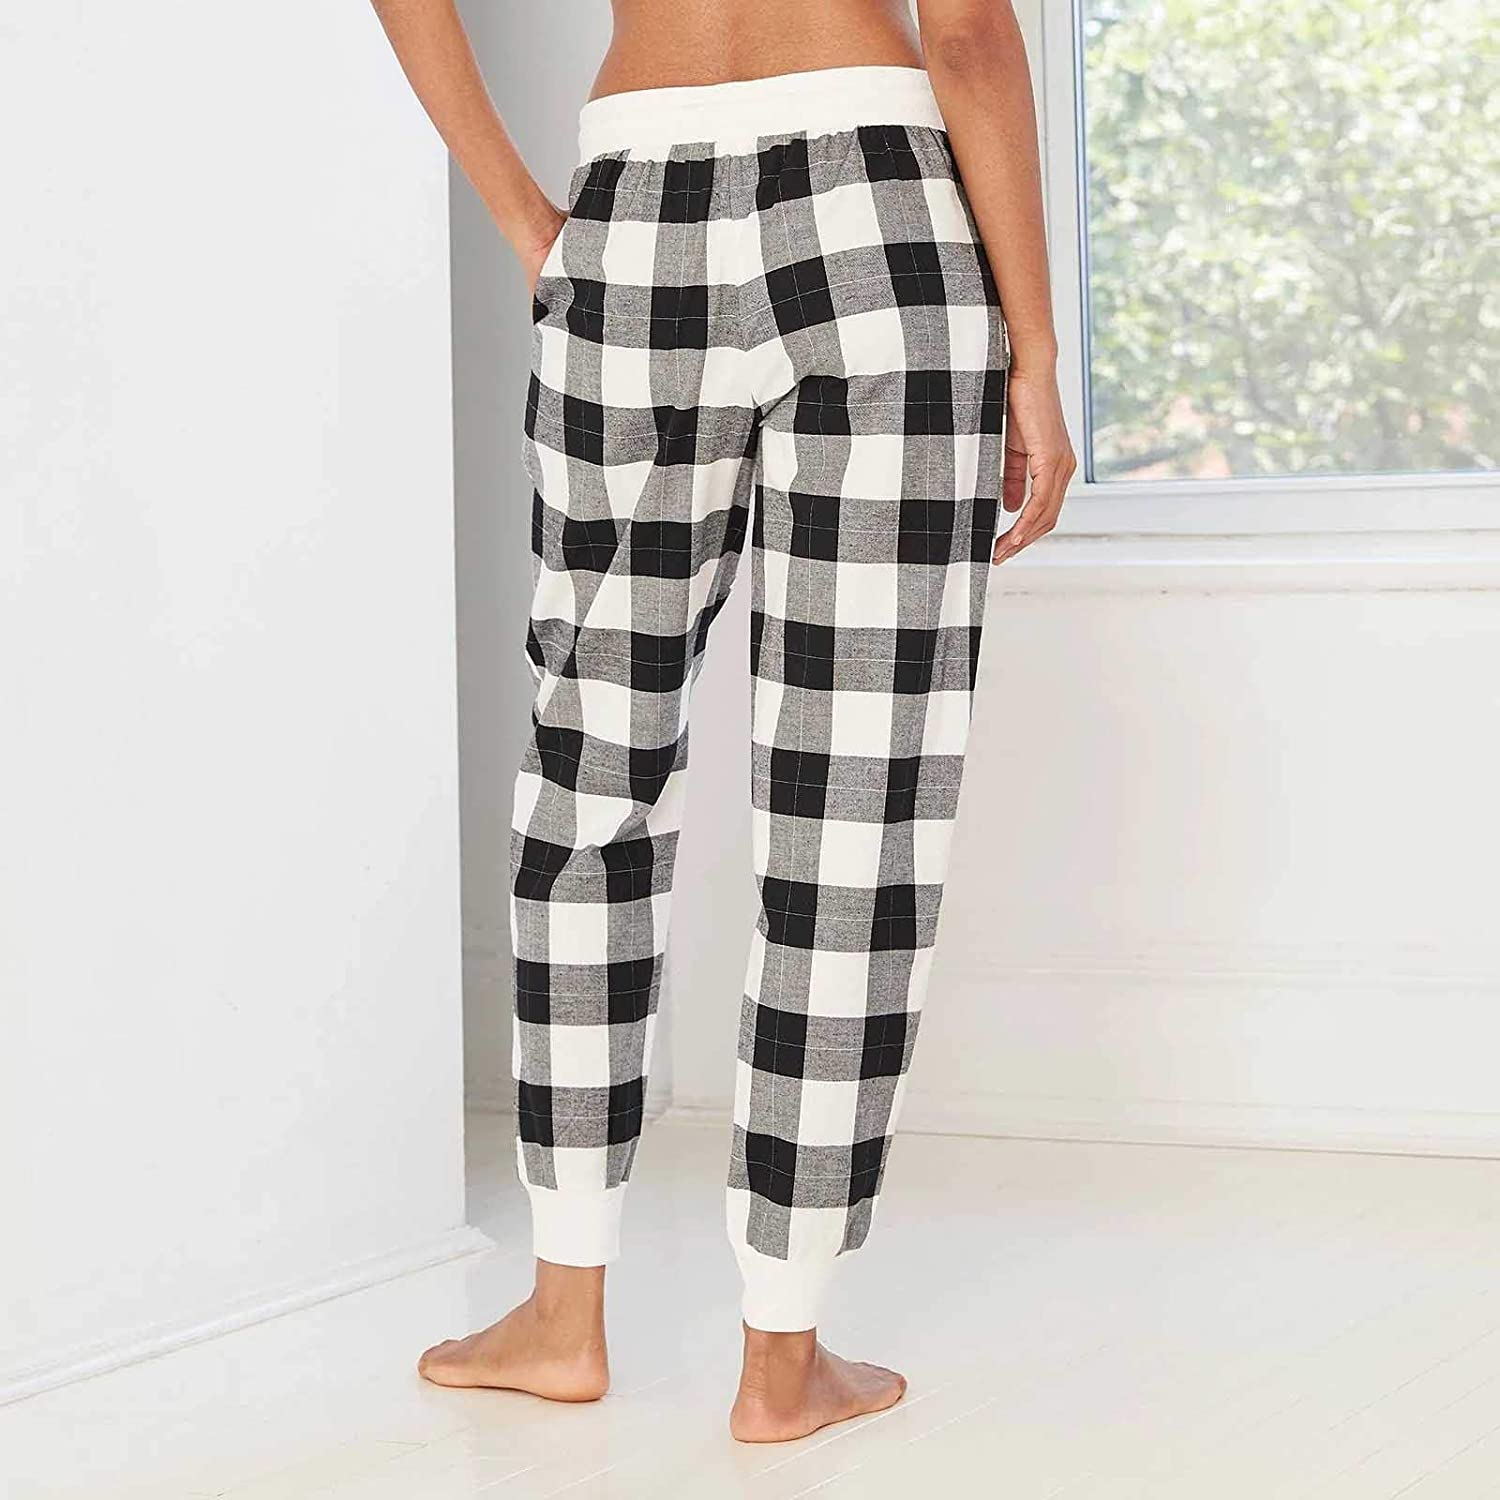 Sleep /& Lounge PJ Bottoms Comfy Soft Pjs Casual Drawstring Trousers Plaid Pajamas Pants for Women with Pockets